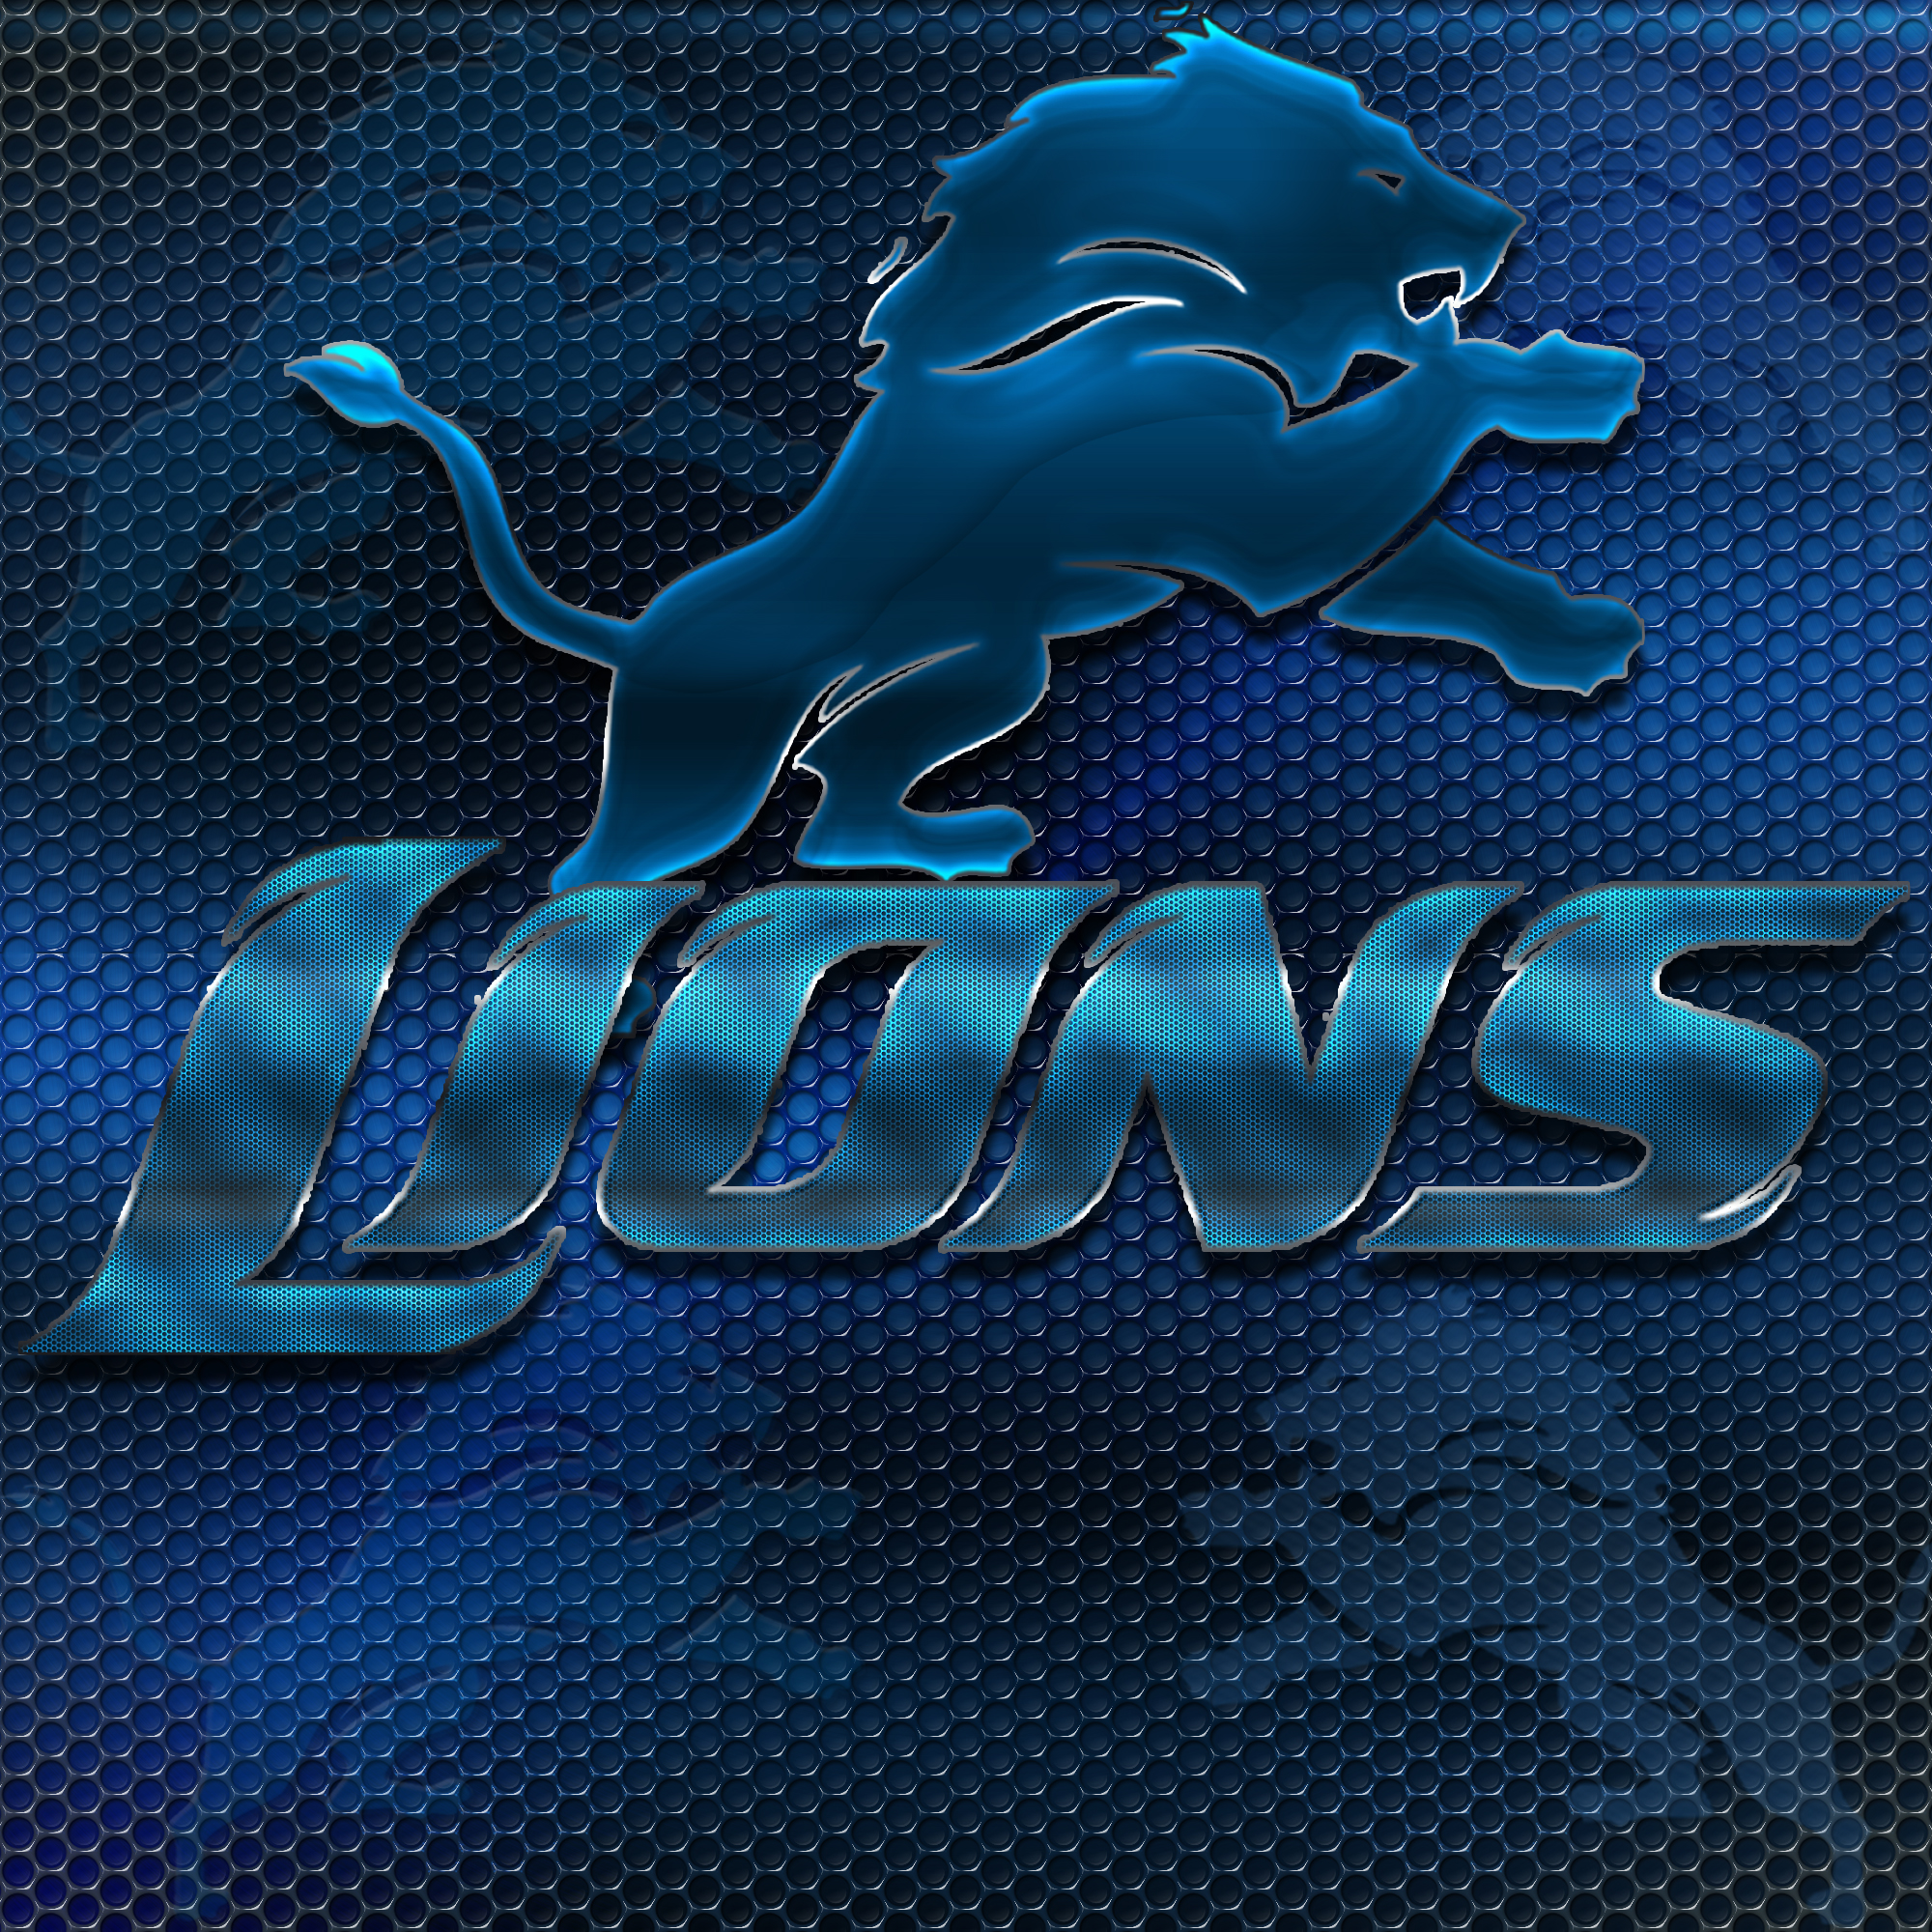 Good Wallpaper Logo Lion - Detroit%2520Lions%2520Heavy%2520Metal%25201x1%2520Text%2520N%2520Logo%2520Wallpaper  Graphic_355865.jpg